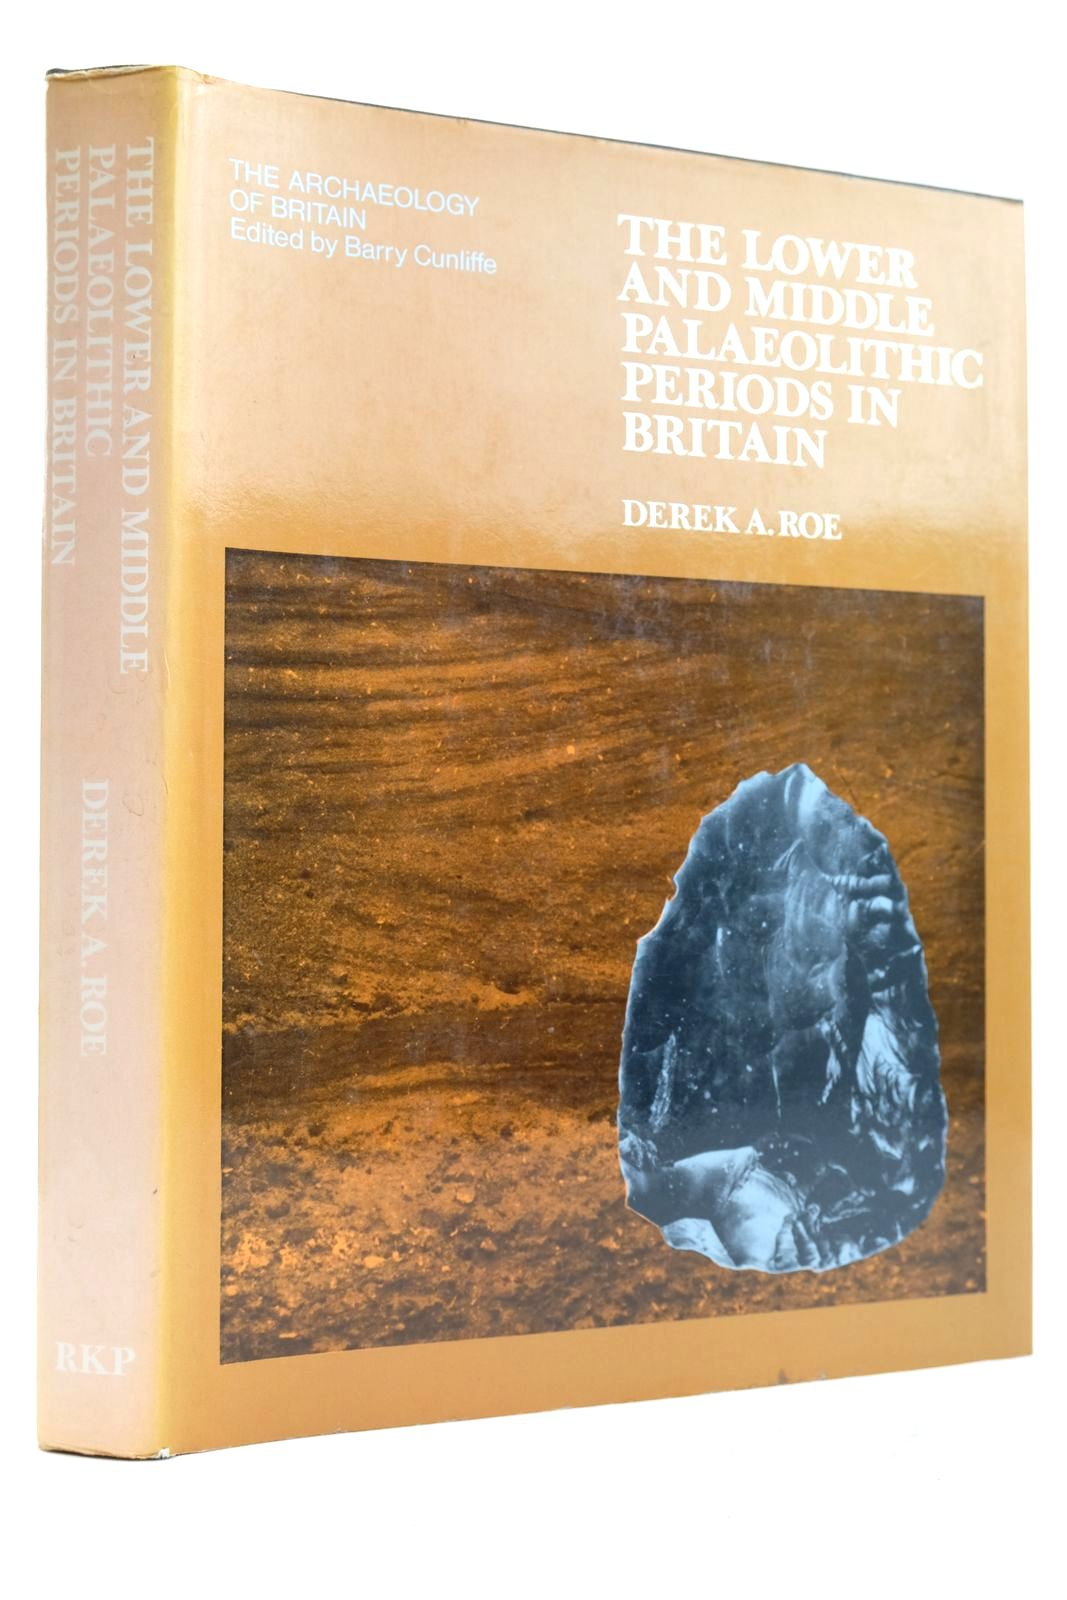 Photo of THE LOWER AND MIDDLE PALAEOLITHIC PERIODS IN BRITAIN written by Roe, Derek A. published by Routledge & Kegan Paul (STOCK CODE: 2132743)  for sale by Stella & Rose's Books